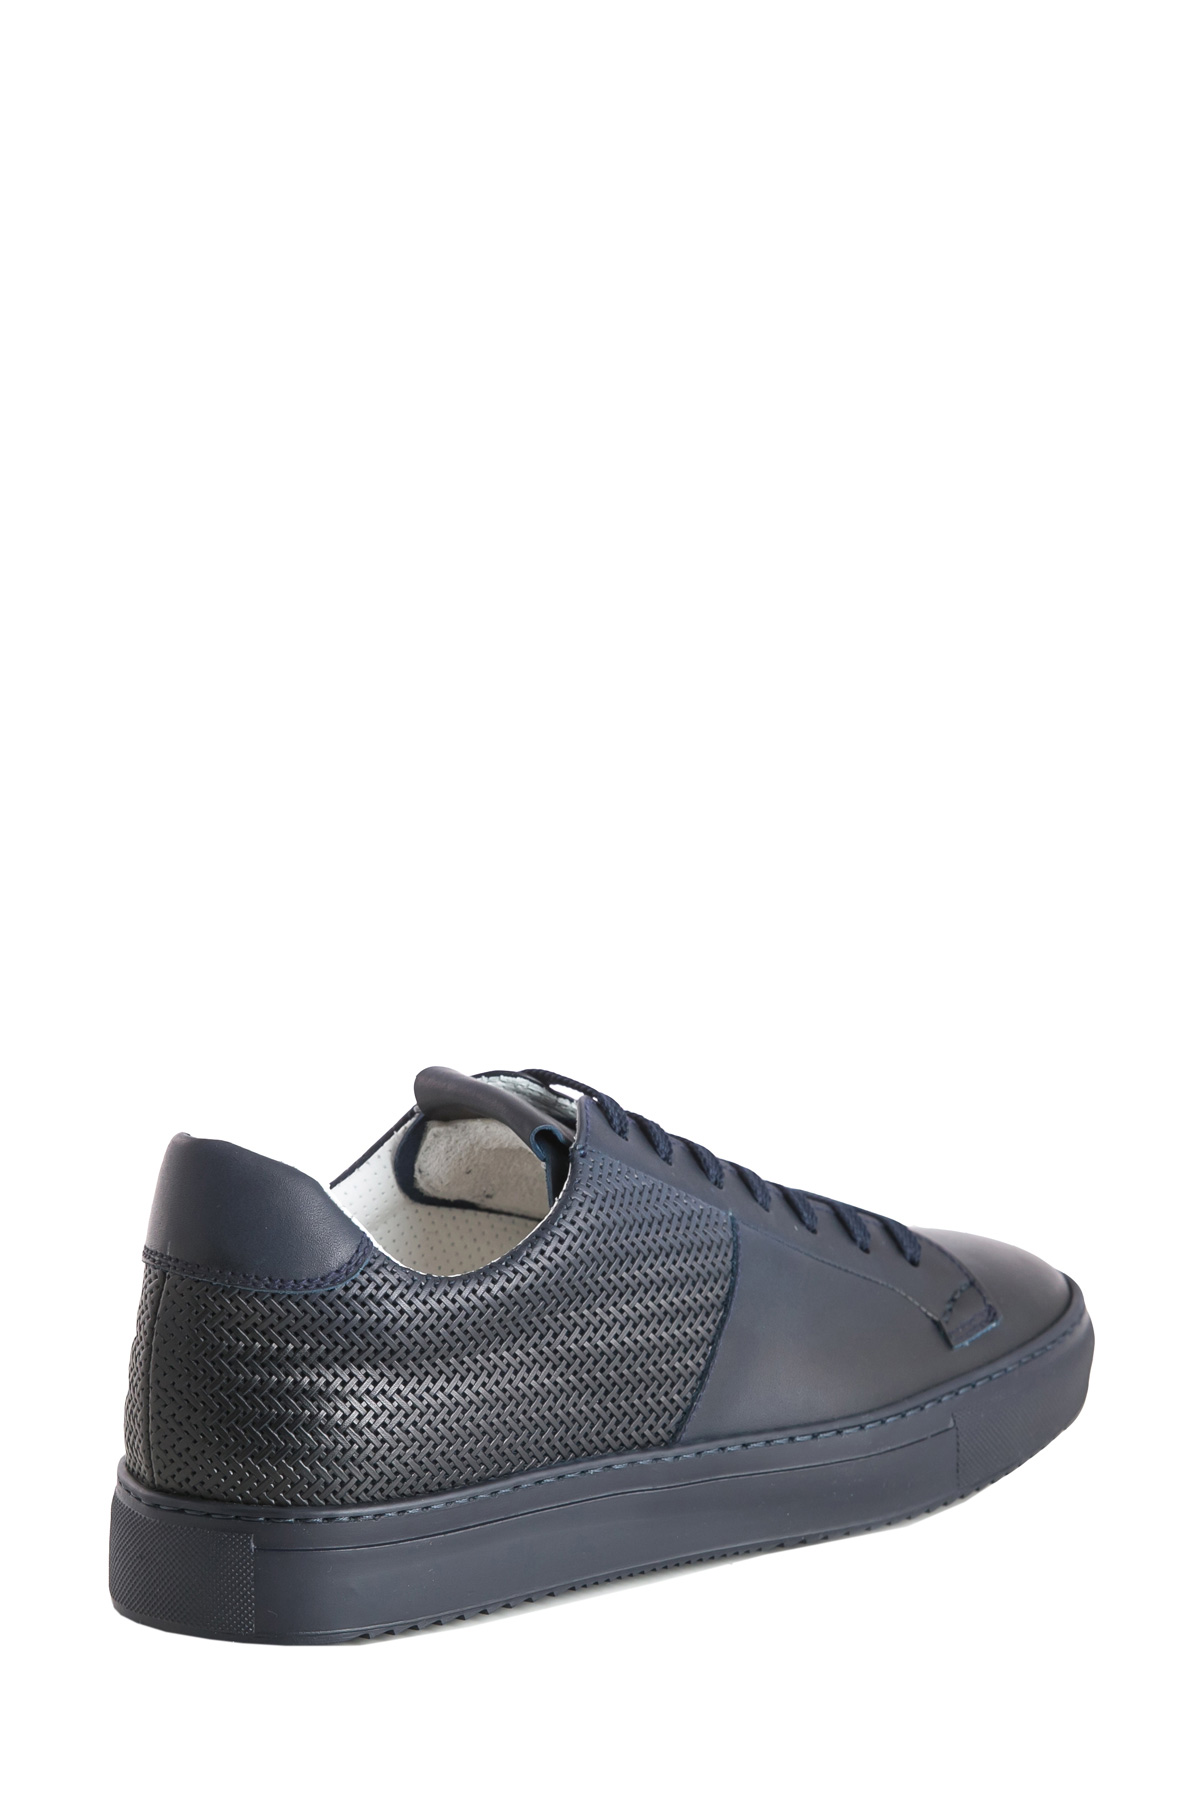 BLU SNEAKER WITH WOVEN LEATHER PANELS DUCA DI WELLS | Sneakers | NU2448ERICUF043BB00BLU